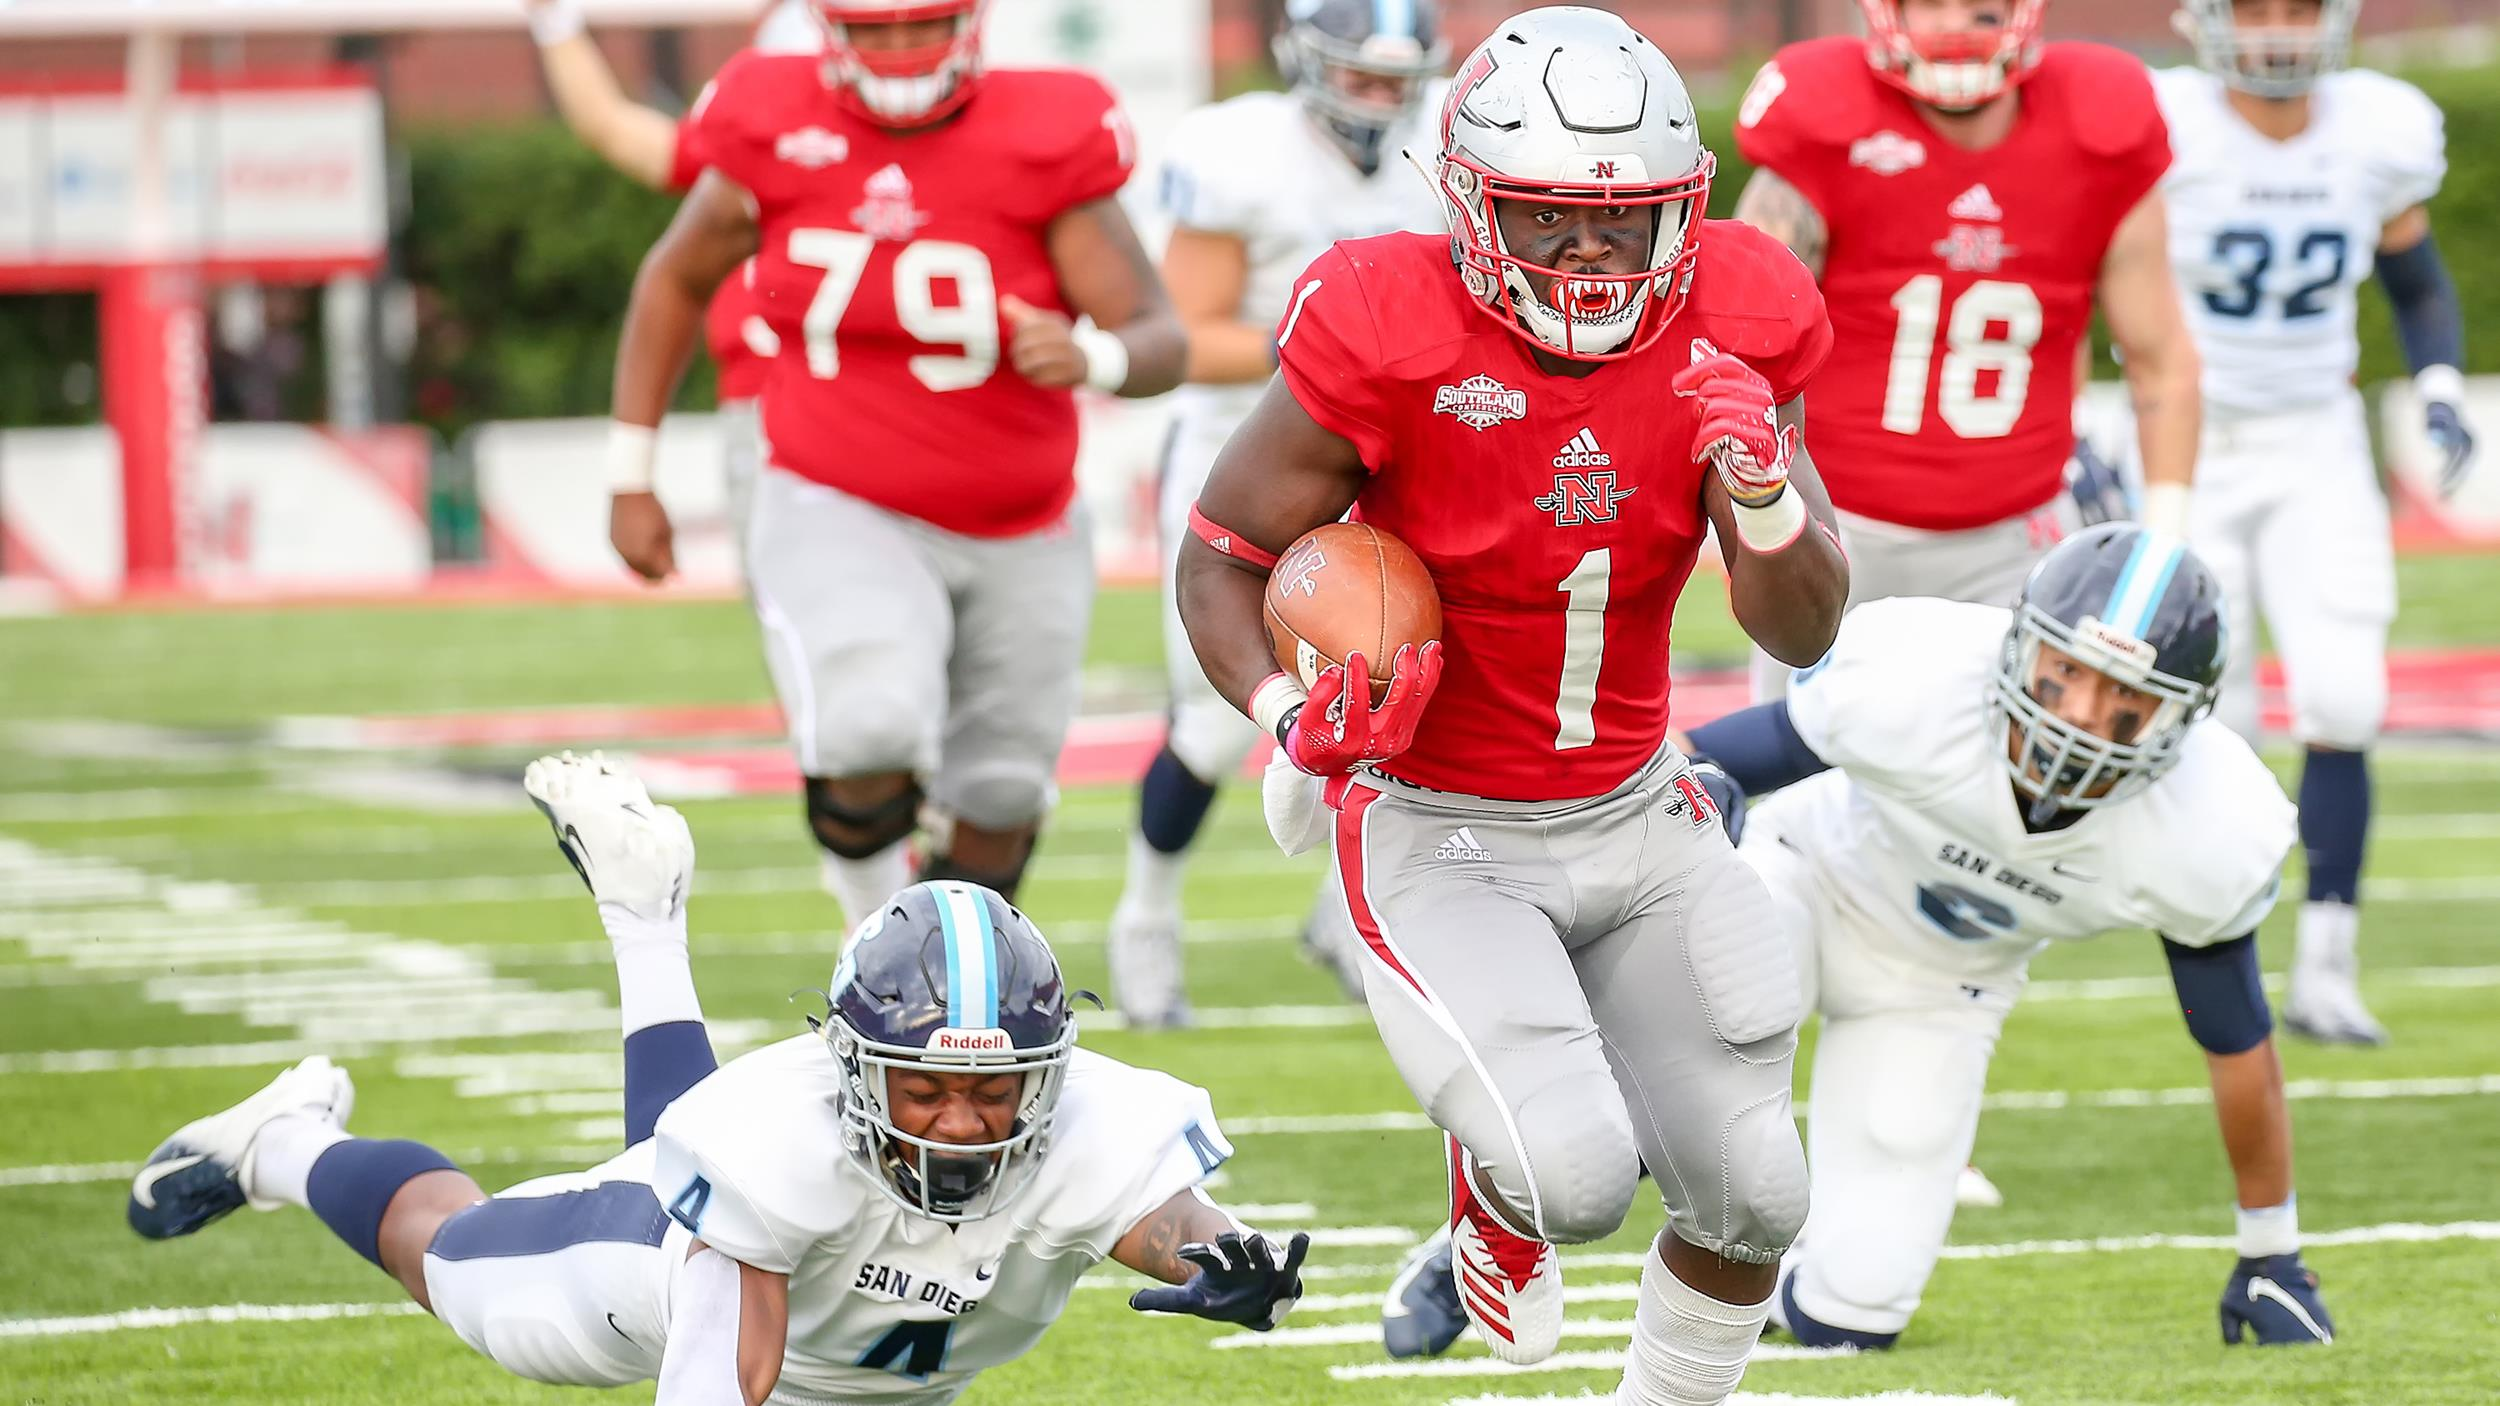 Nicholls moves to second round in FCS playoffs with 49-30 win over San Diego